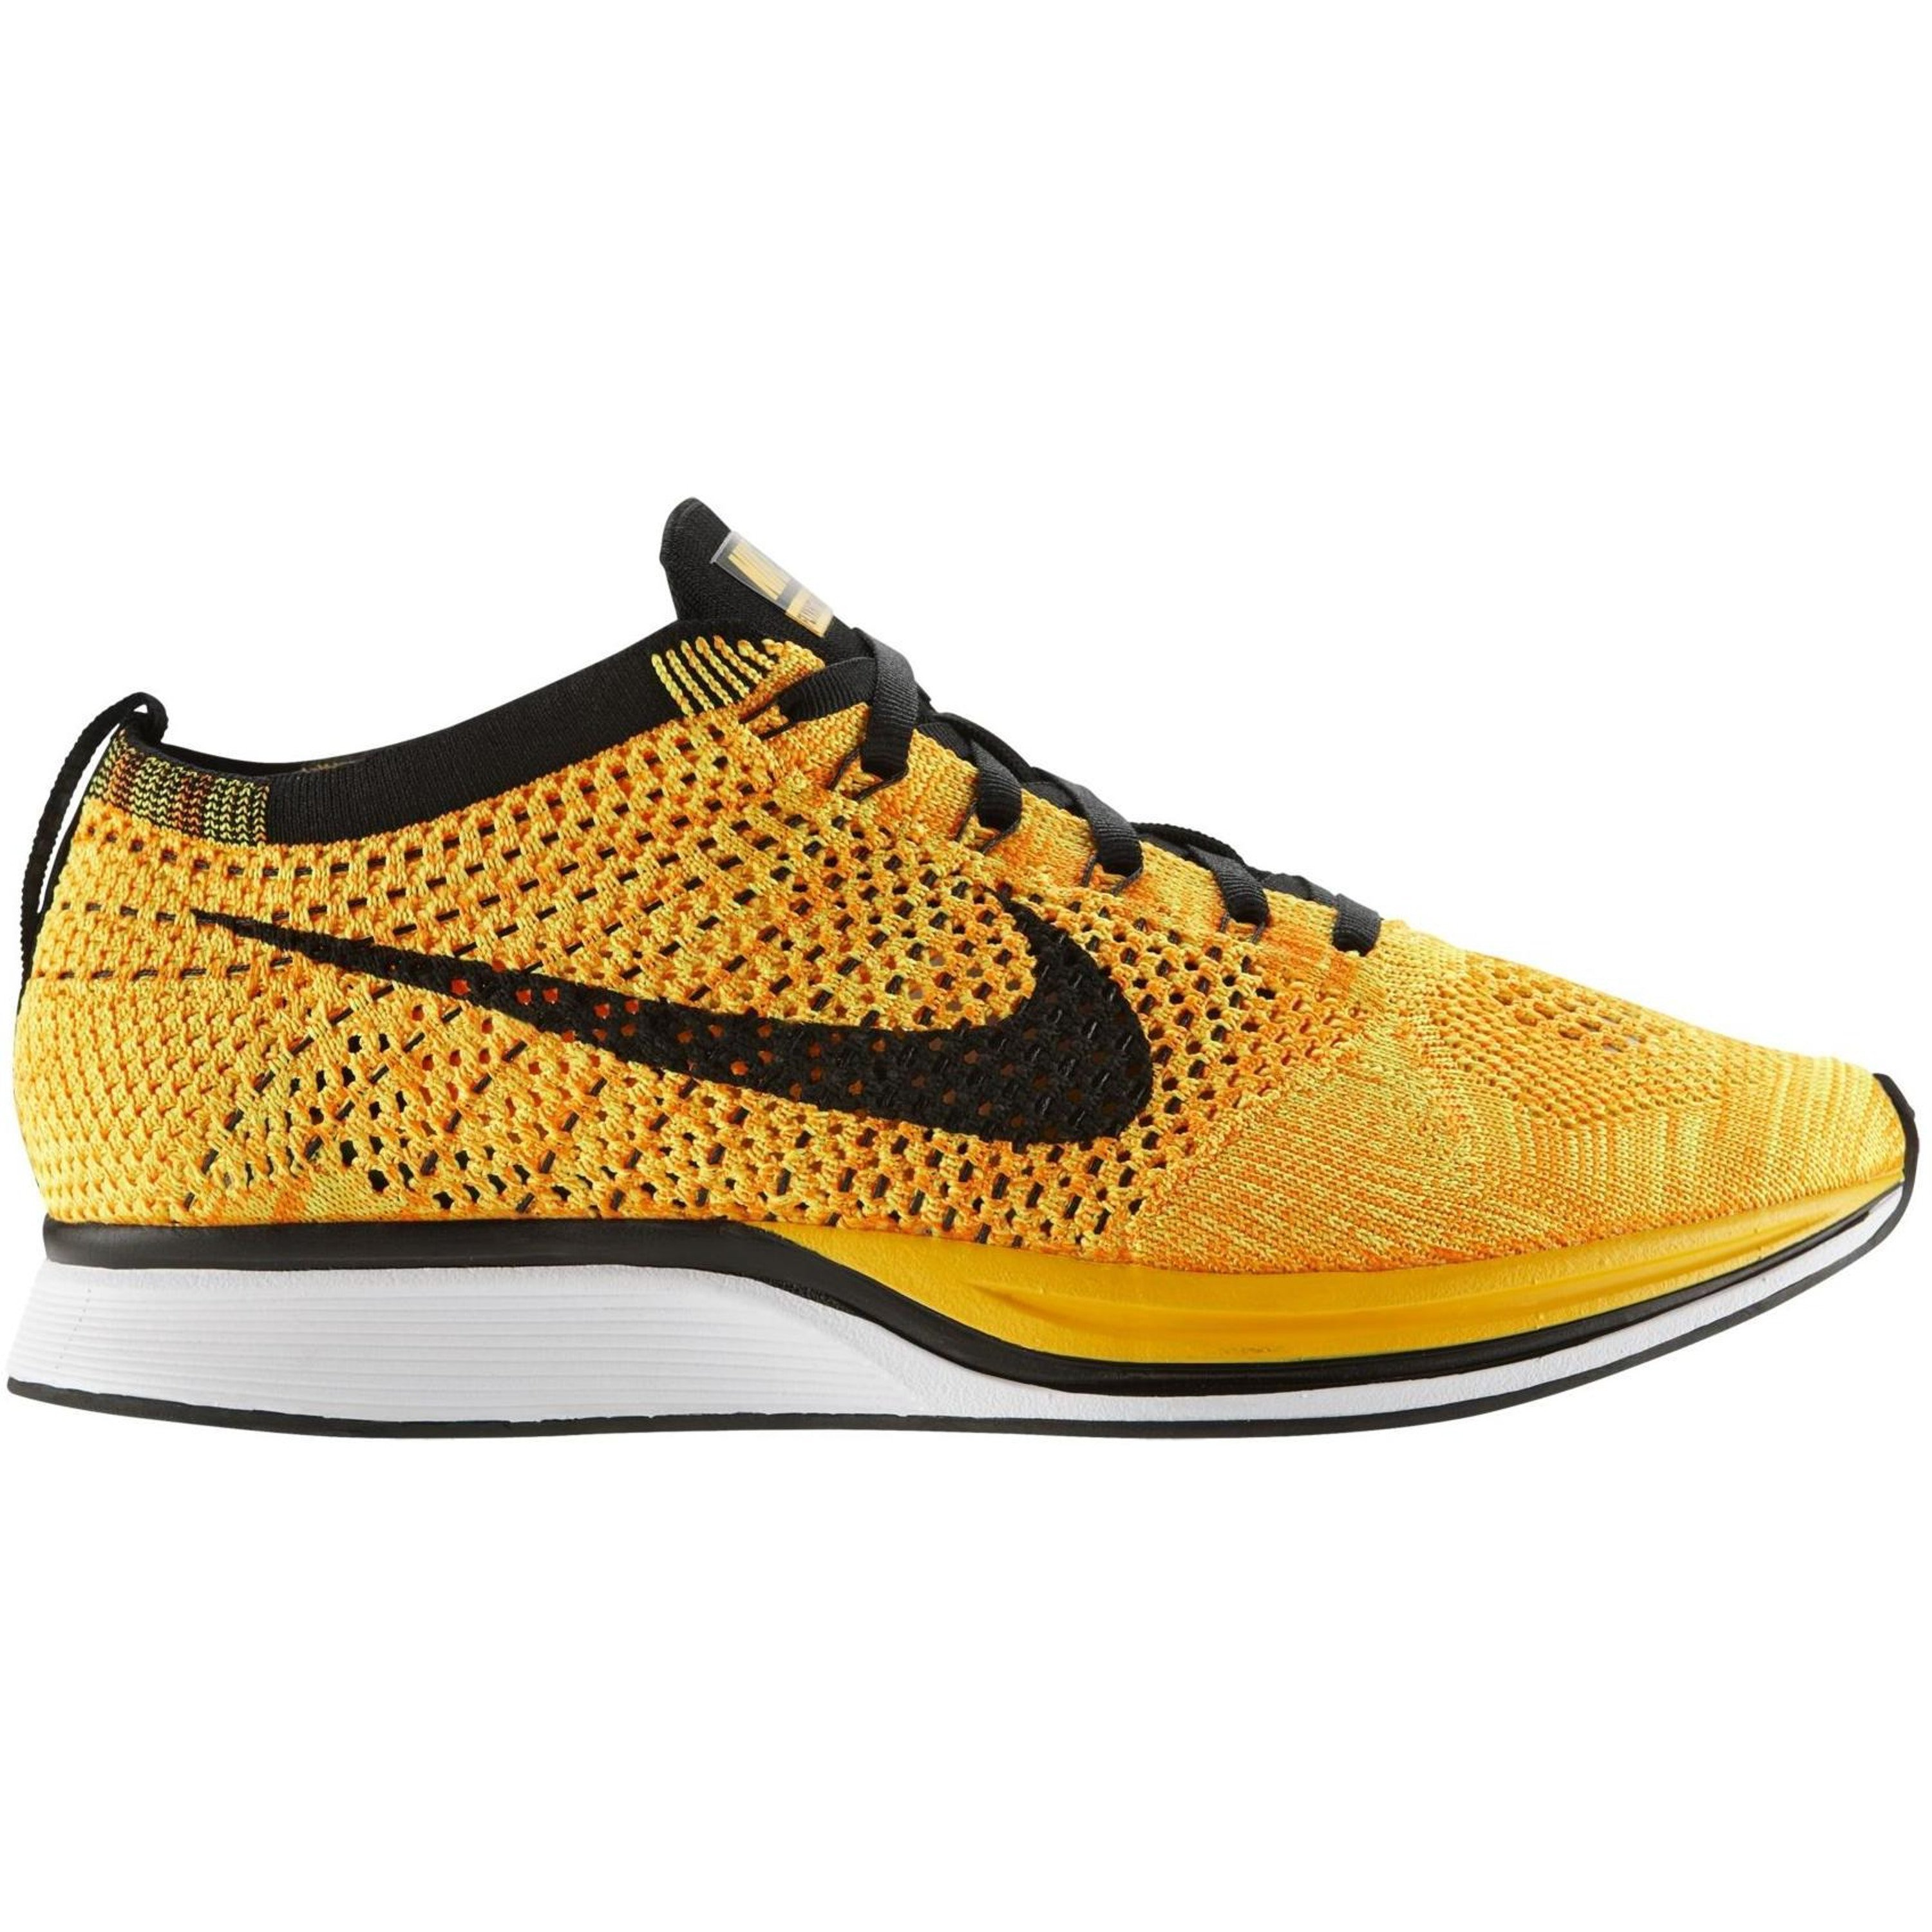 Nike Flyknit Racer Cheetos (526628-808)